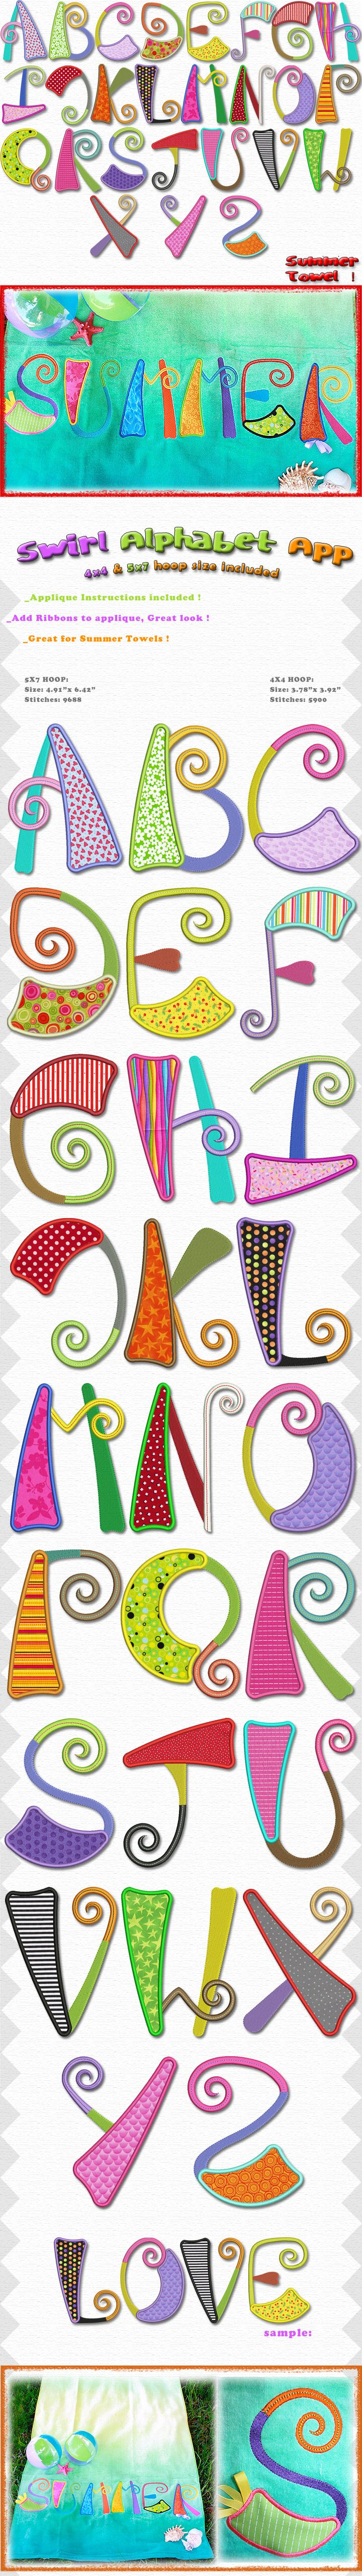 swirl alphabet embroidery designs free embroidery design patterns